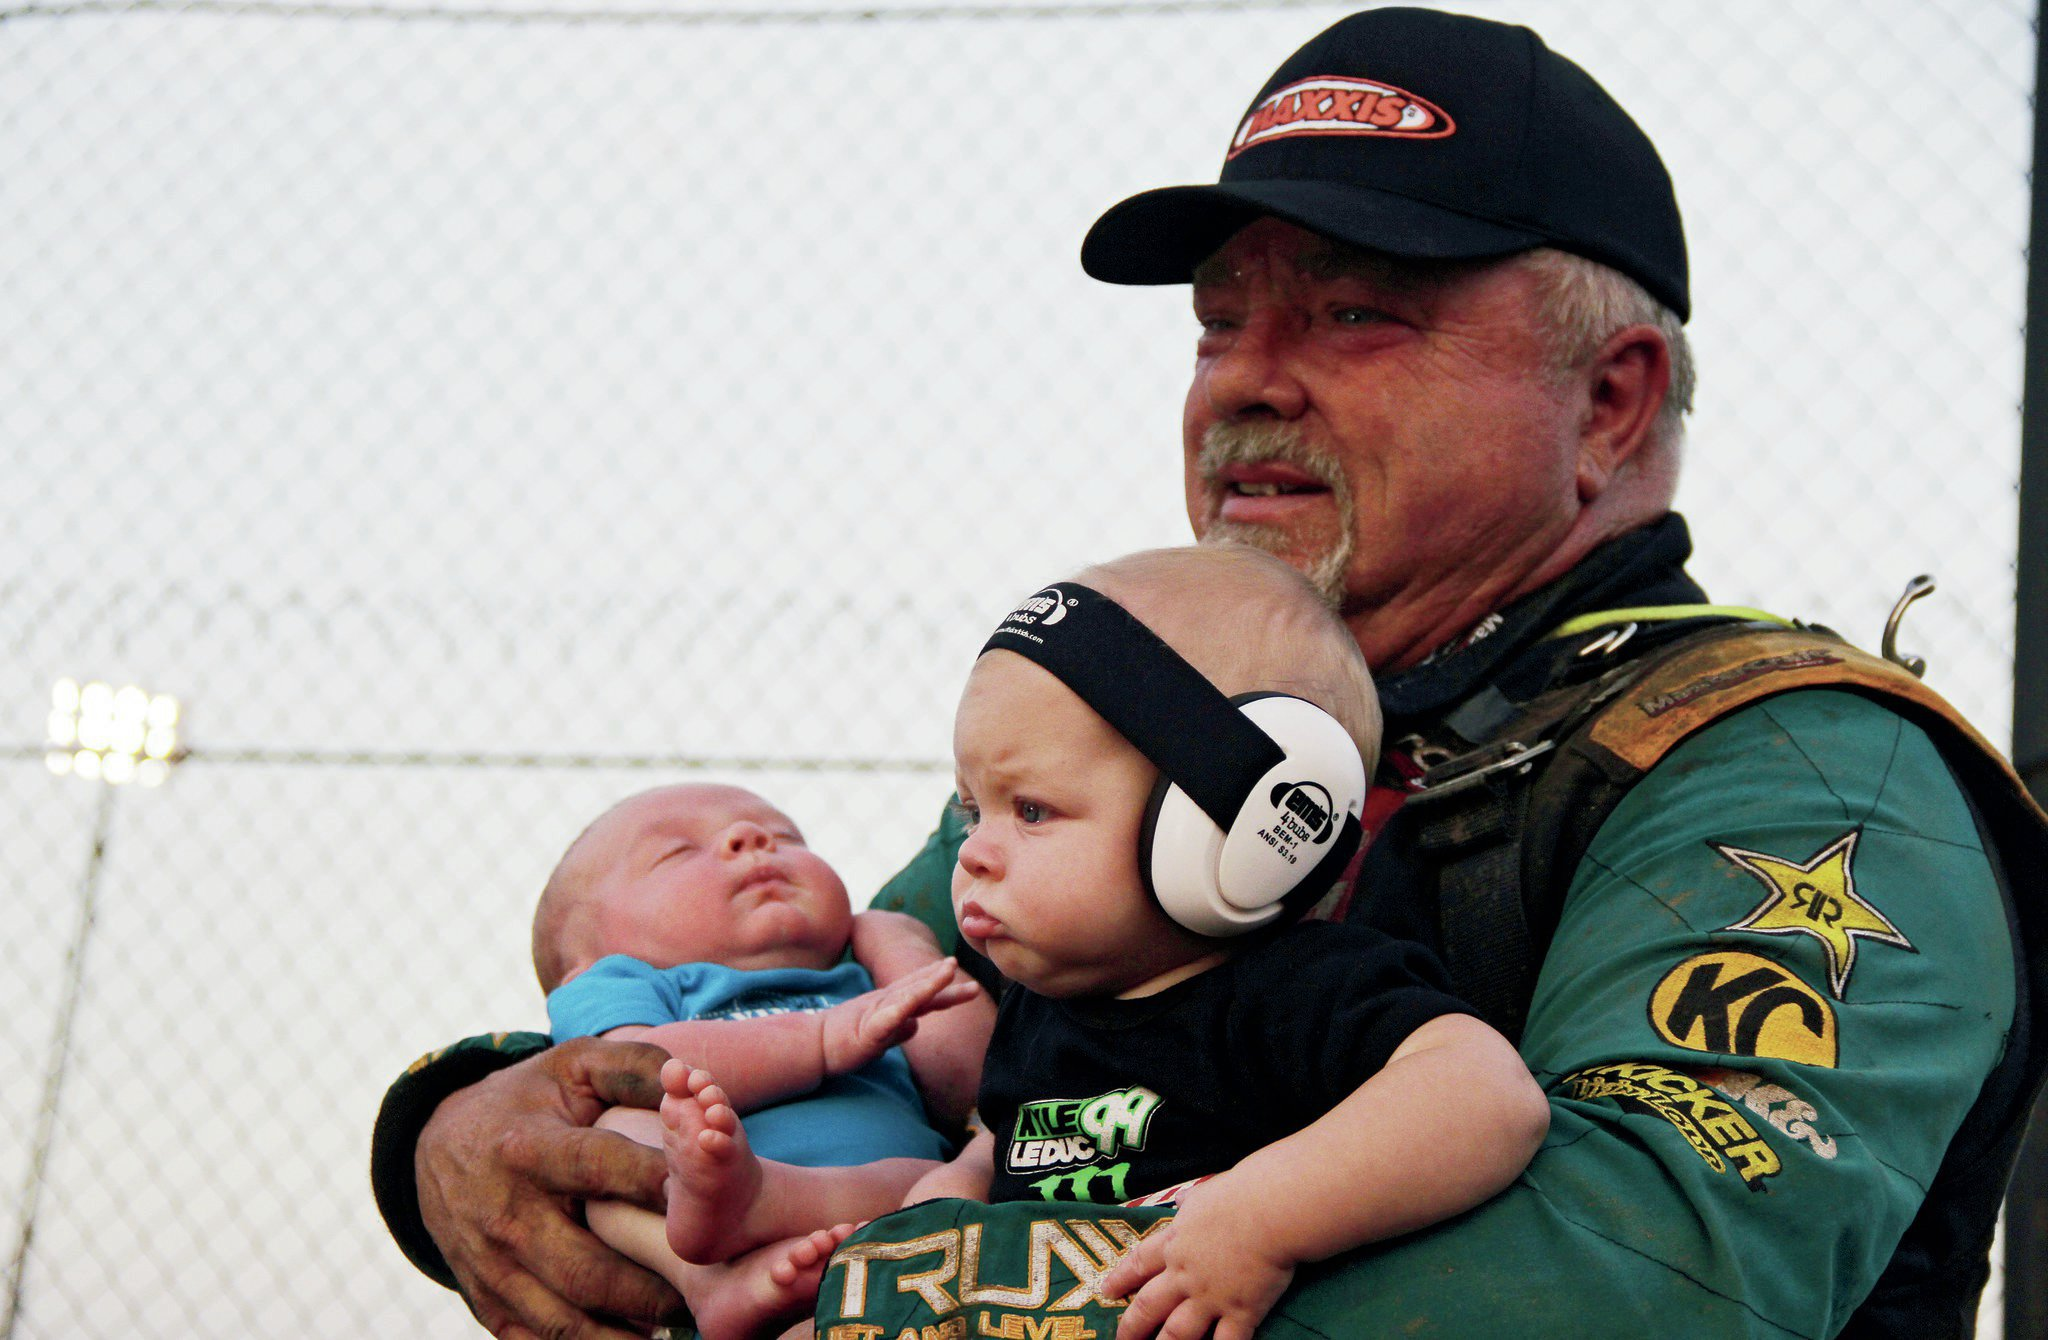 Curt Leduc holds his grandchildren after getting on the podium at the 2013 Lucas Oil Off-Road Racing Series Glen Helen Pro-4 race.